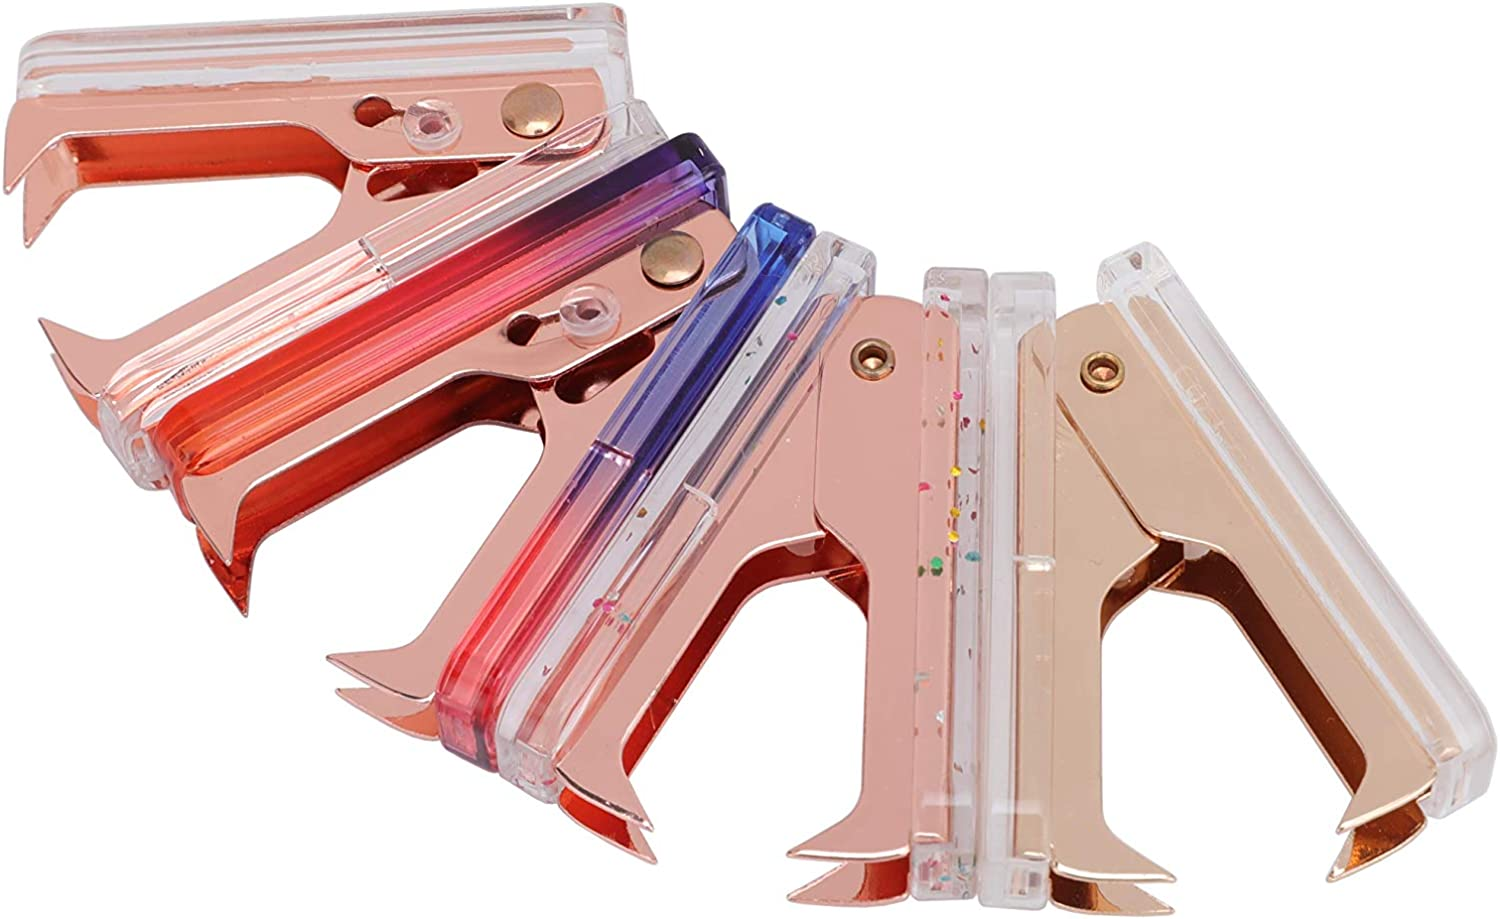 LUYING Clear Staple Remover Extra Wide Stainless Steel Jaws Staple Puller Tool for Office School Home Supplies (Rainbow) : Office Products